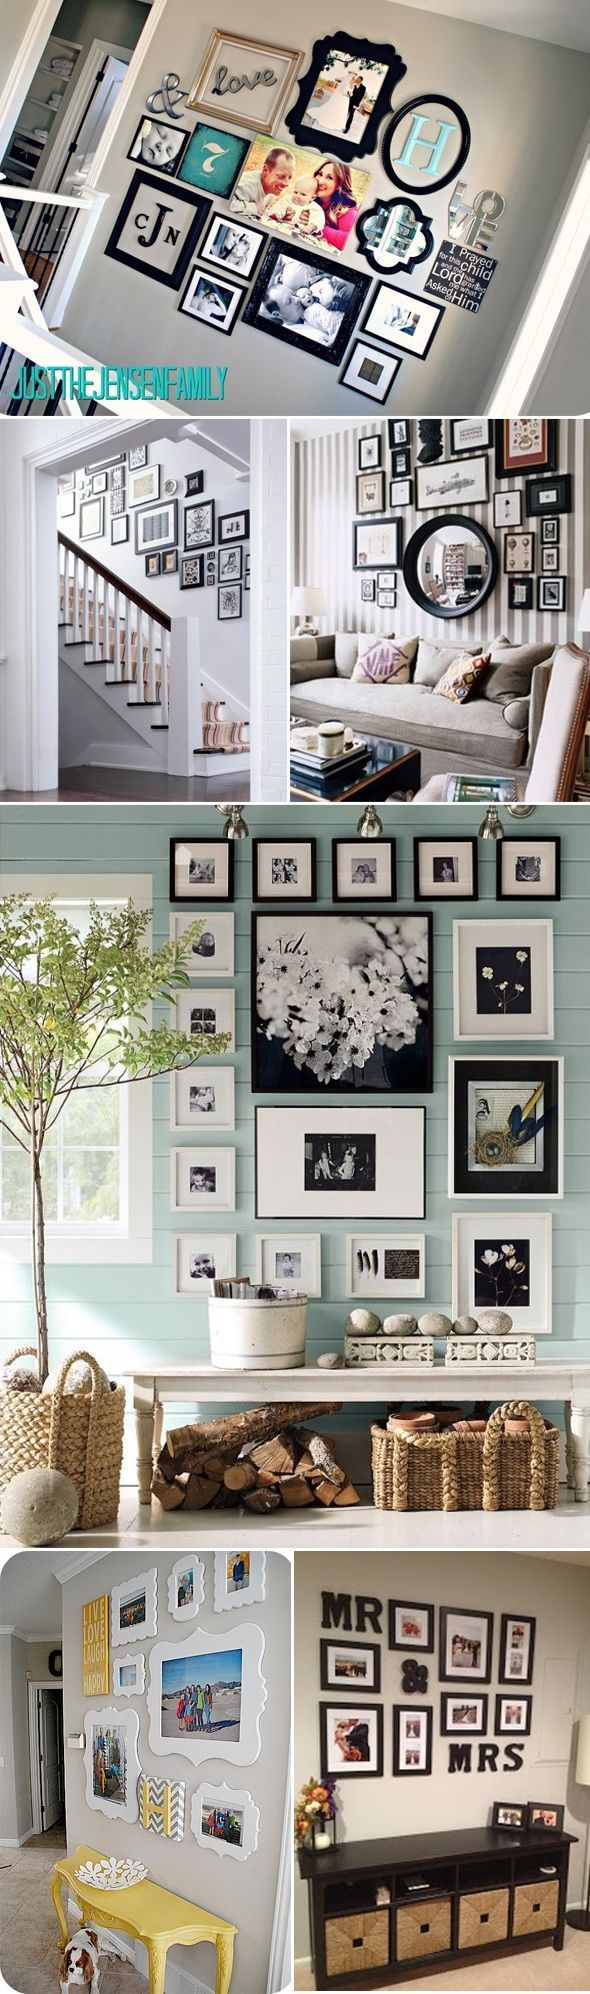 15 Easy and Wonderful DIY Bookshelves ideas 14   Family picture ...